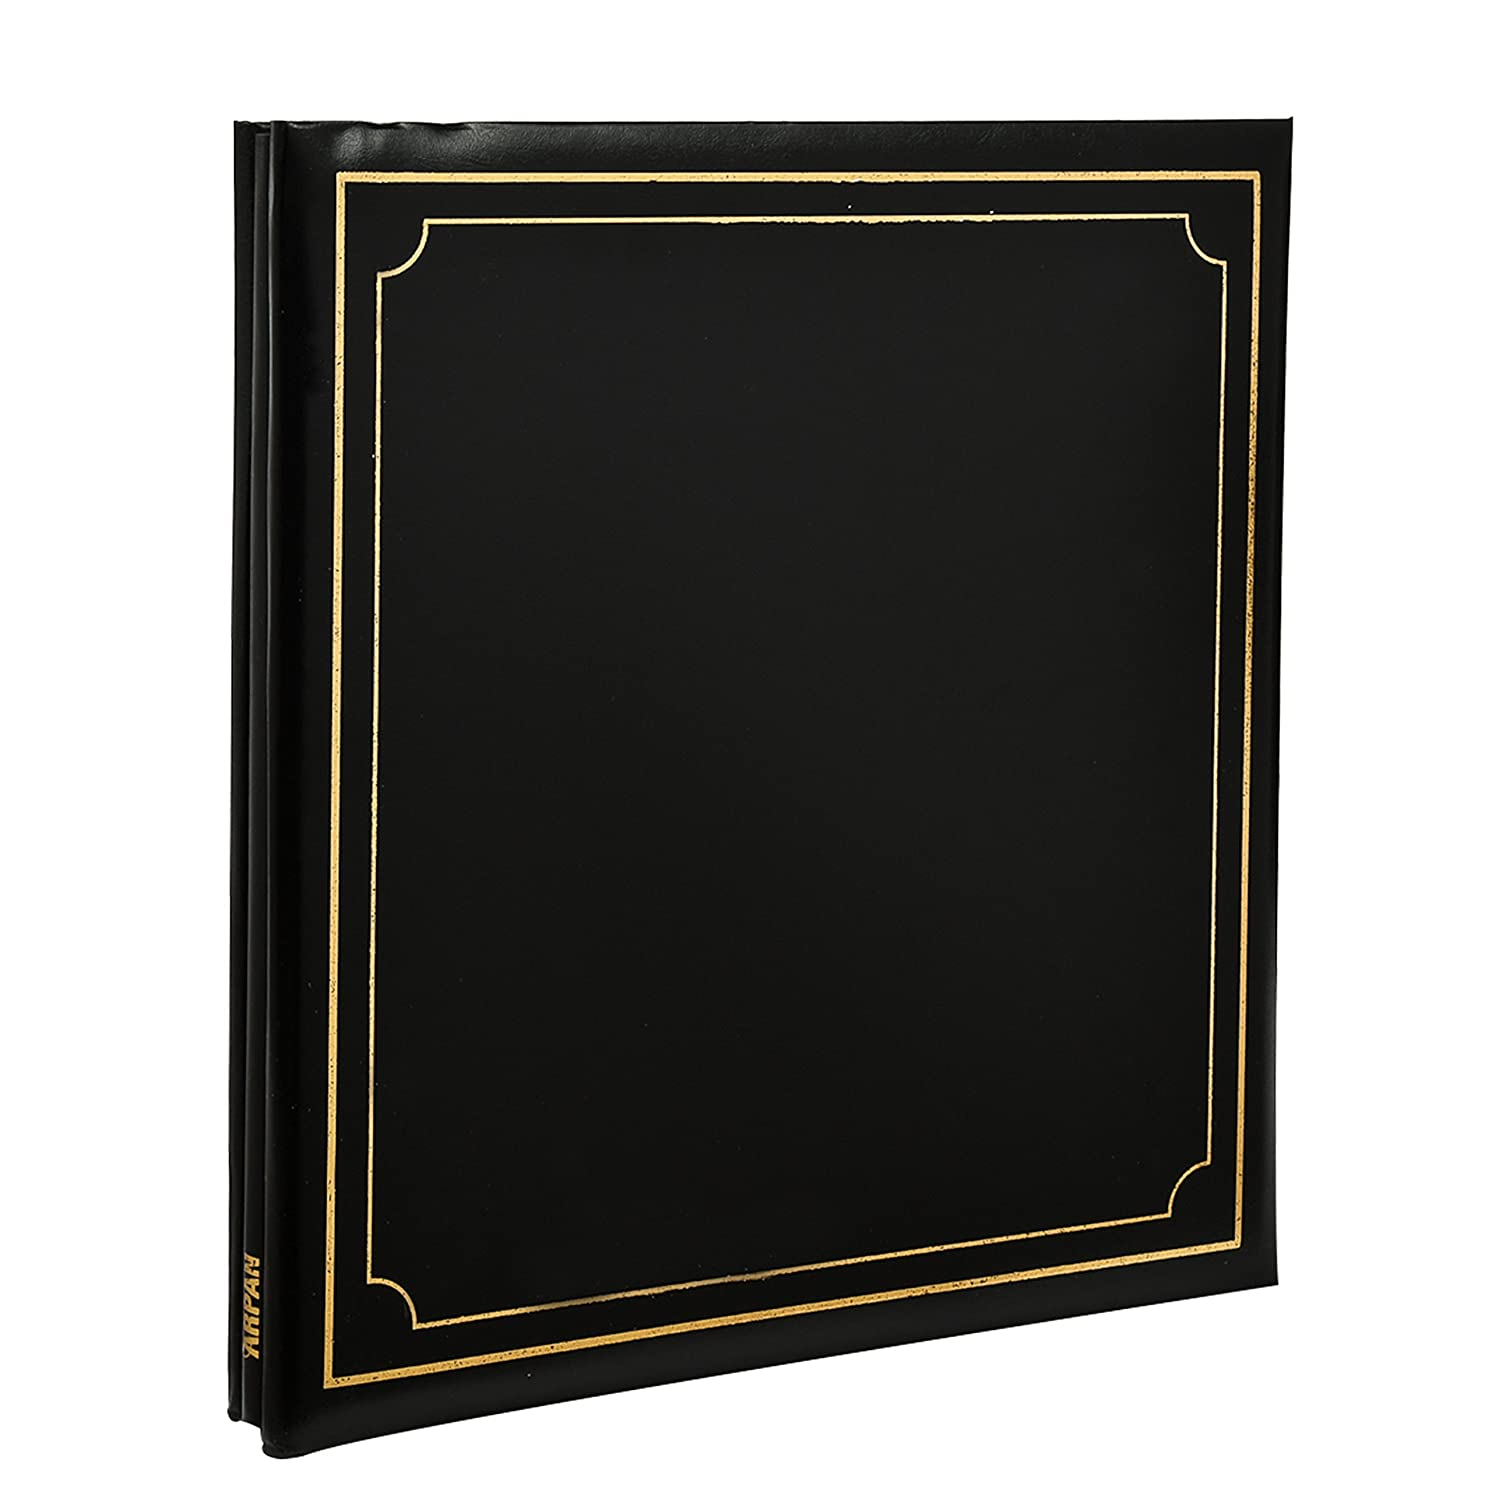 ARPAN Extra-Large 32x26cm Self Adhesive Photo Album 24/Sheets 48/Sides Leather Look Padded Cover Post bound (Black)